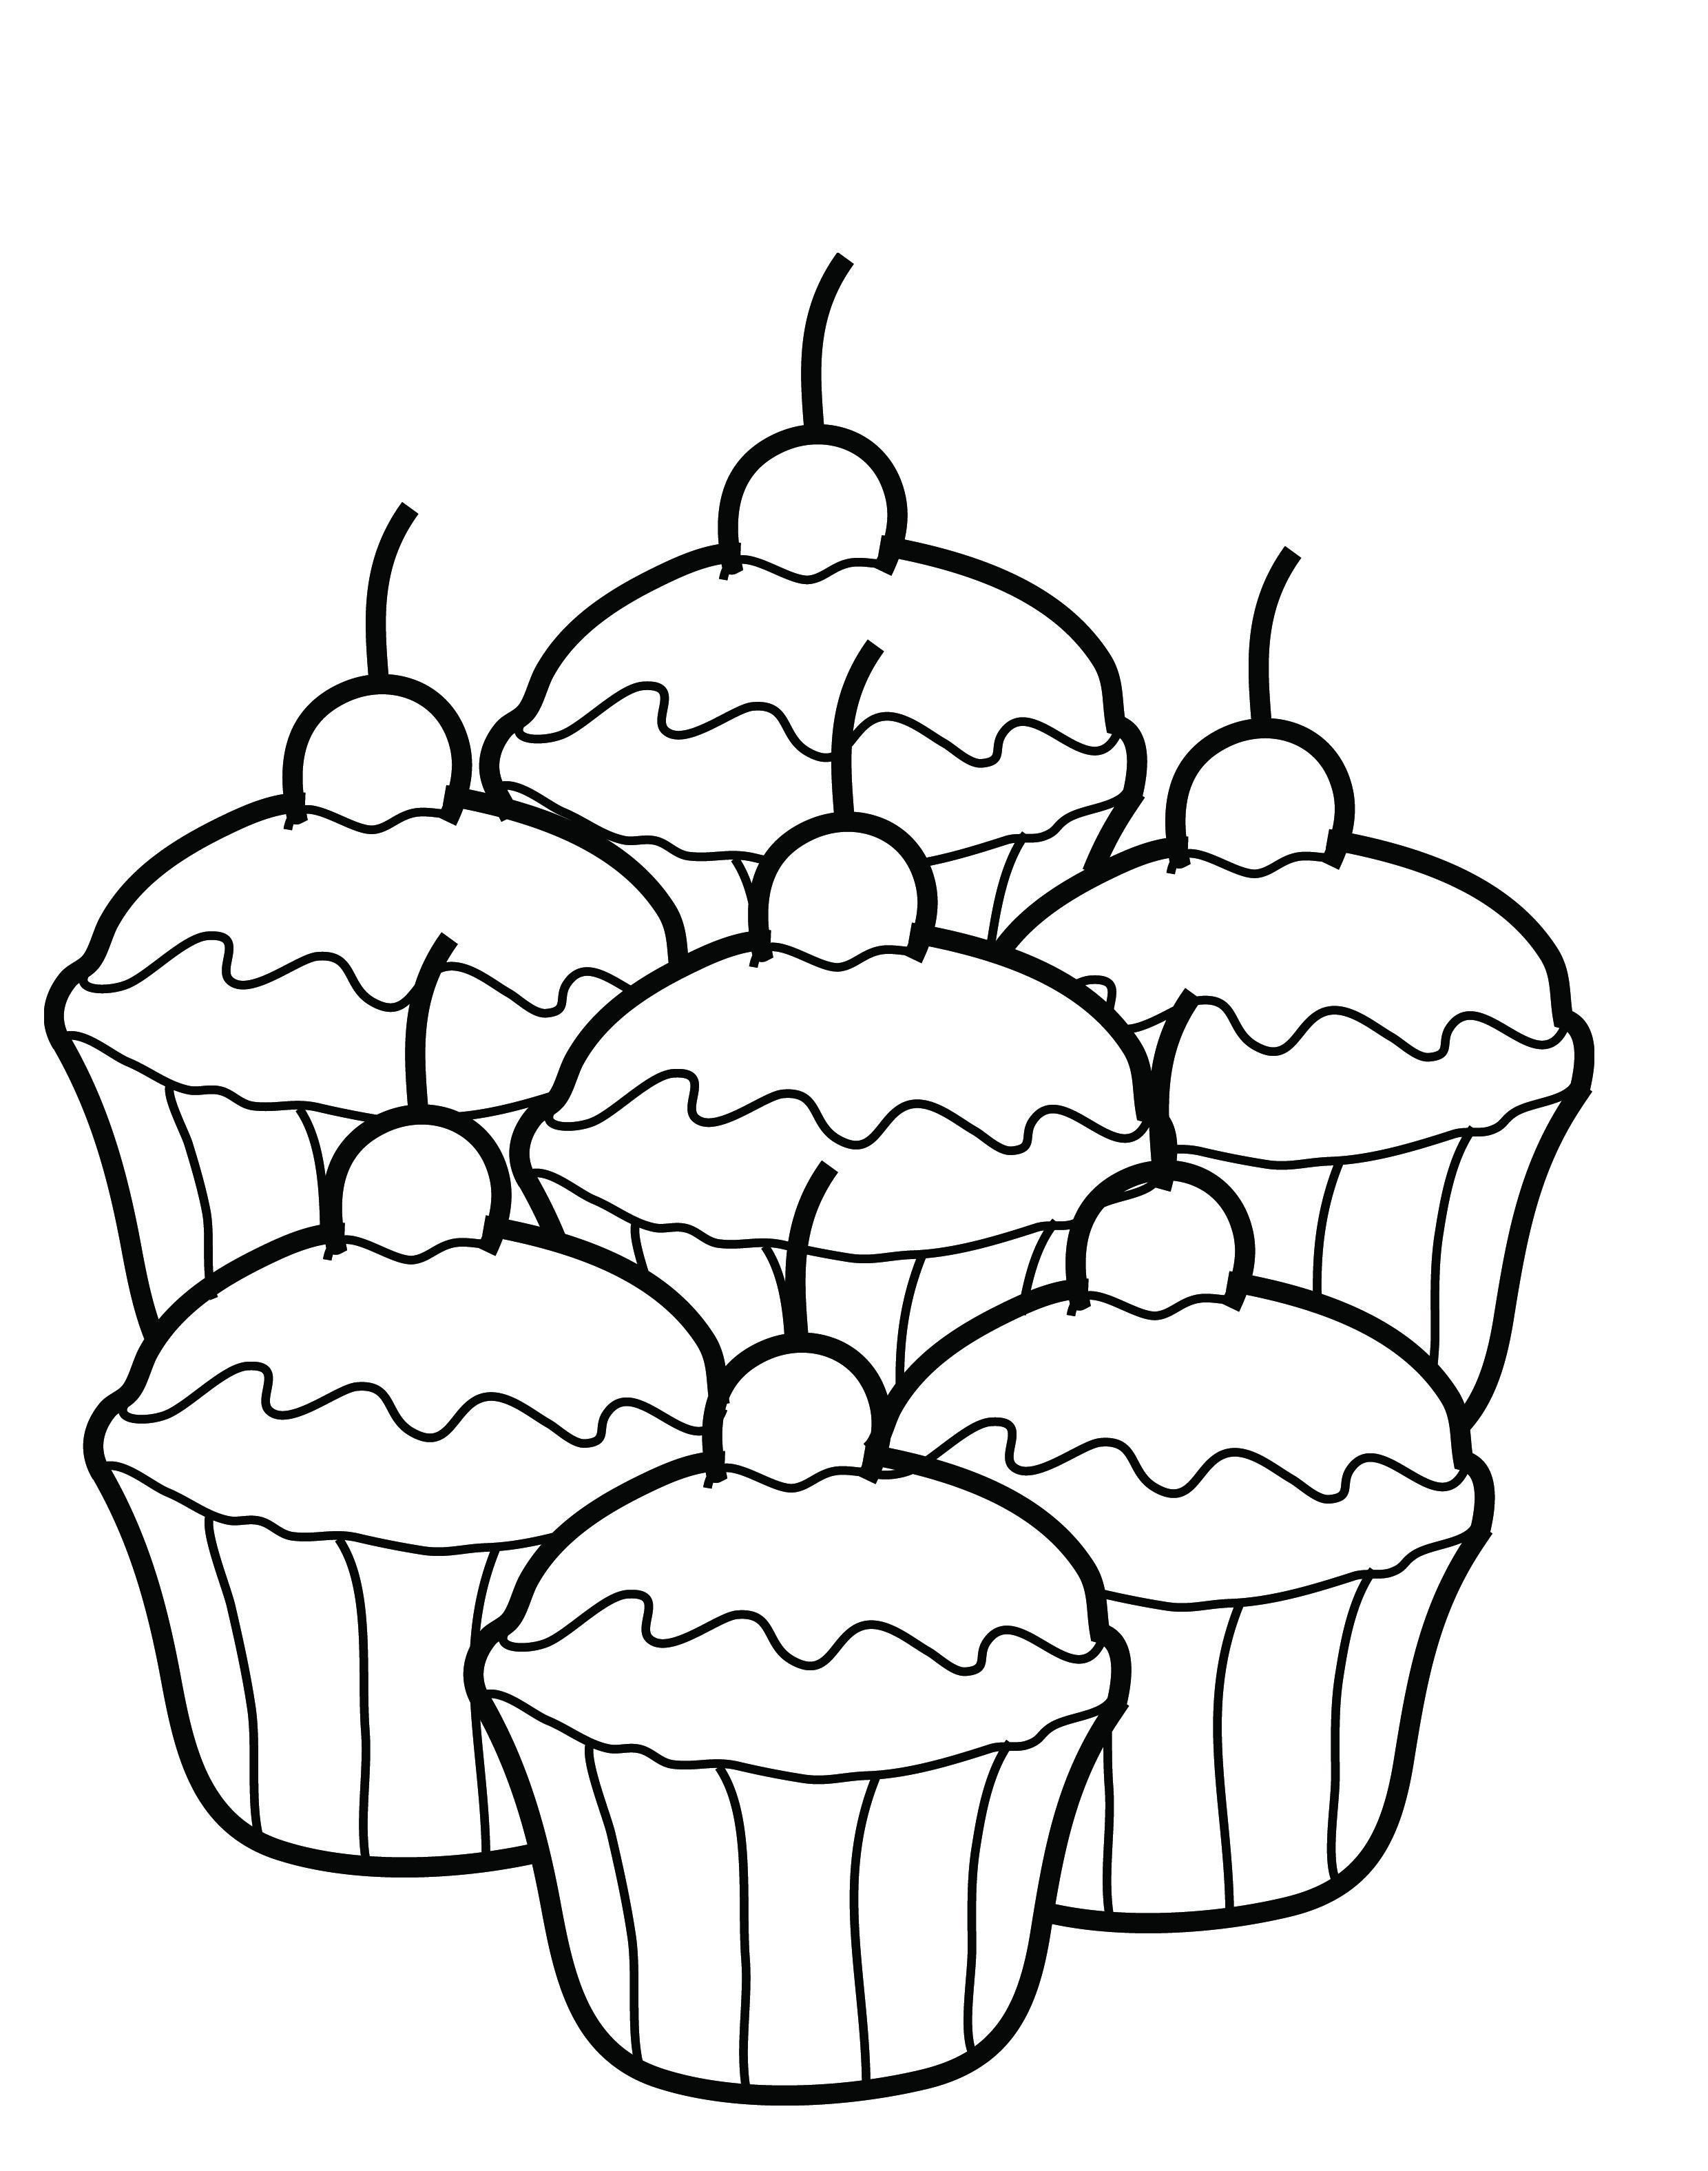 Free Printable Cupcake Coloring Pages For Kids Food Coloring